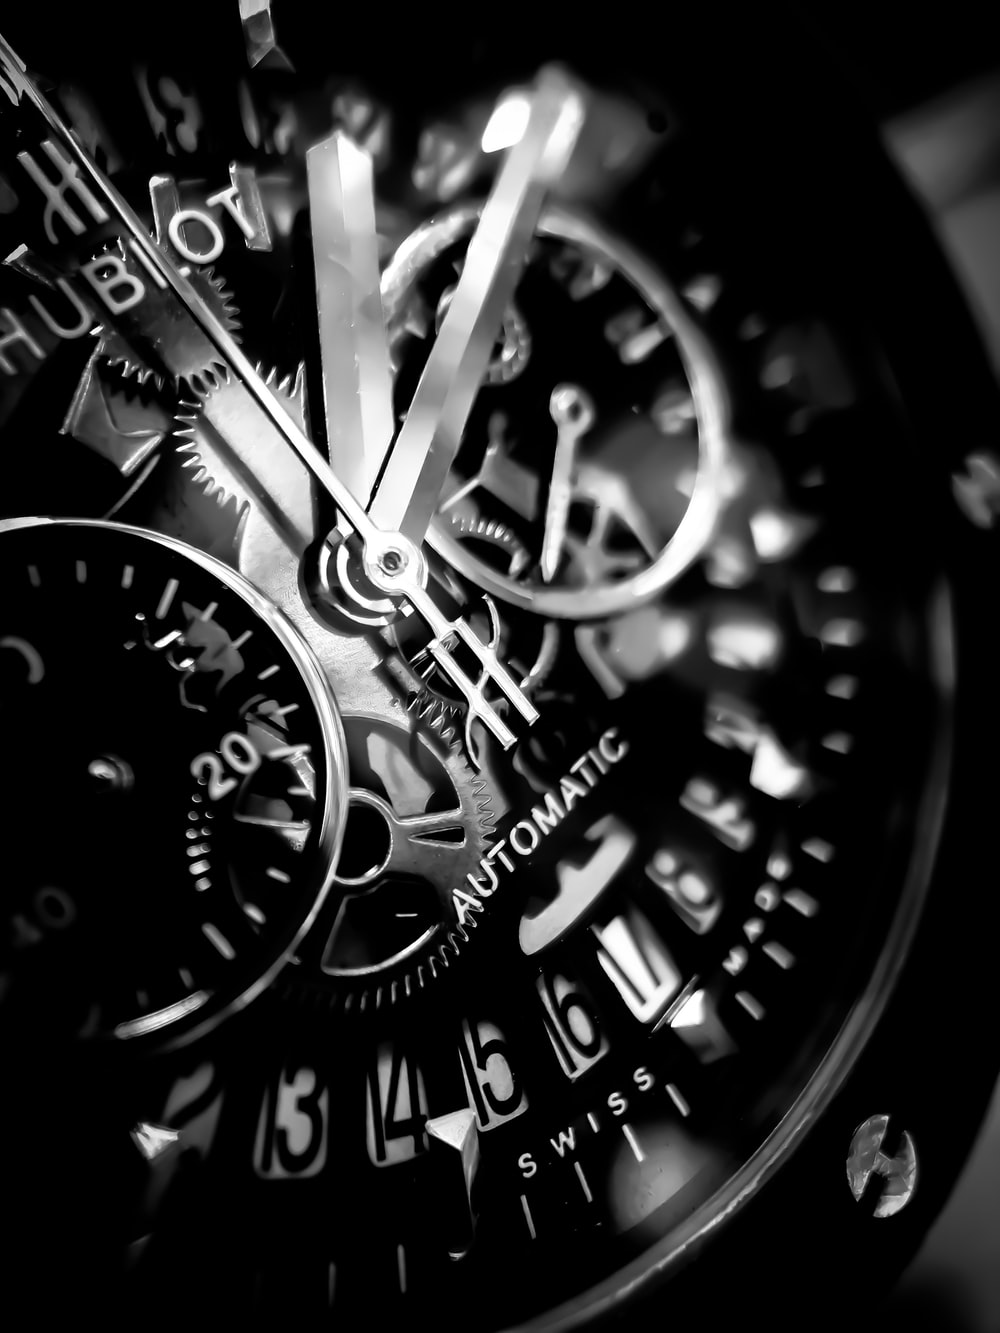 grayscale photo of Hublot chronograph watch displaying 01:10 time